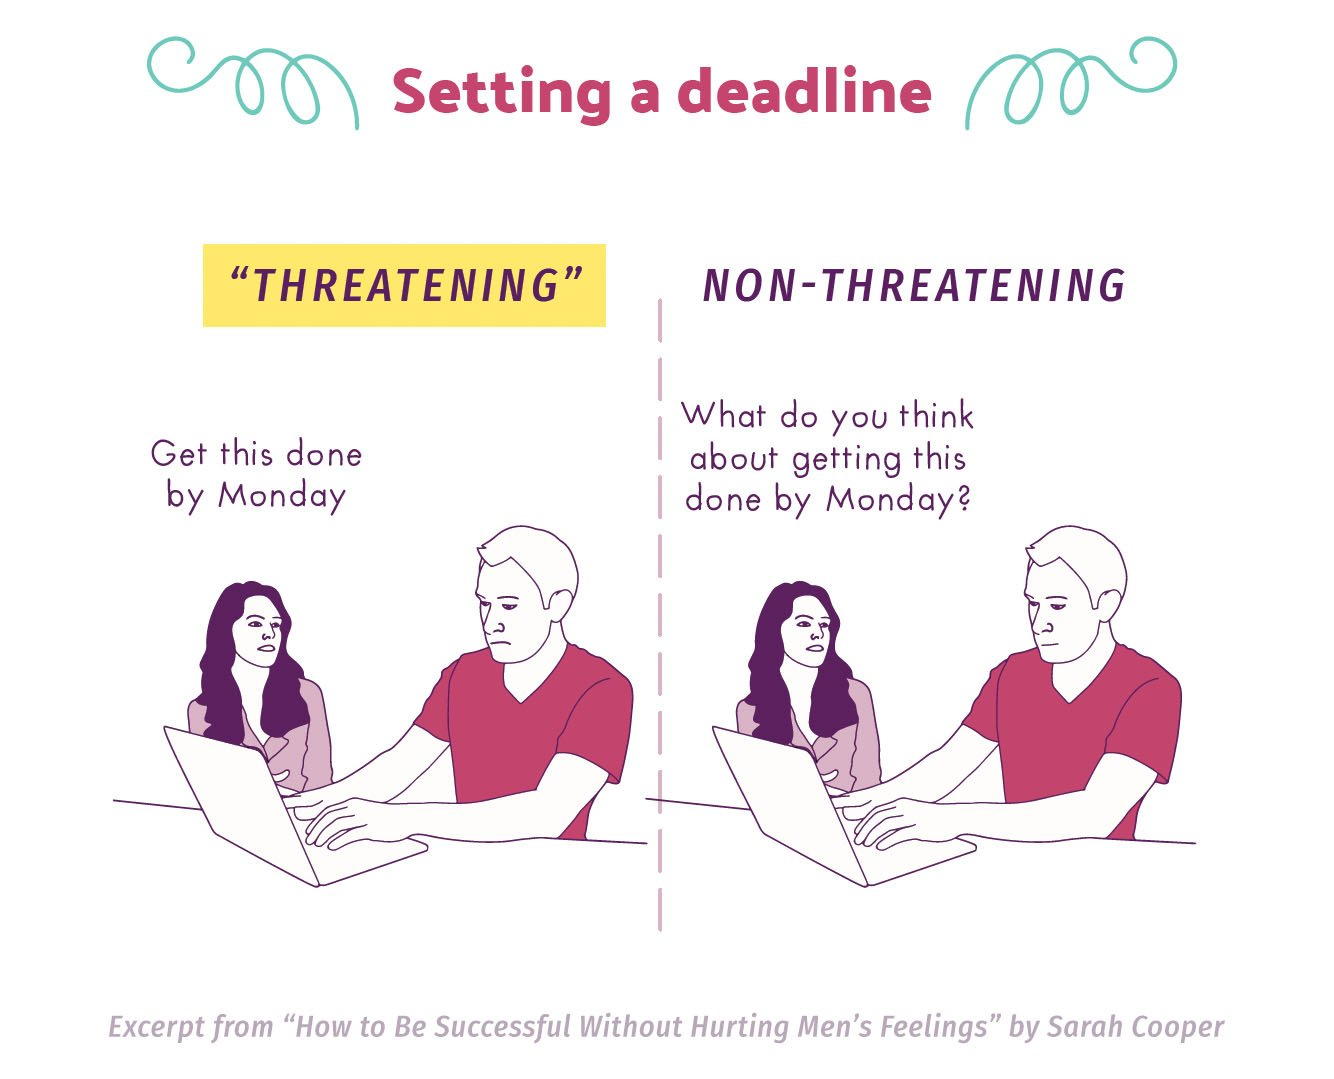 ... non-threatening leadership strategies for women. When setting a  deadline, ask your coworker what he thinks of doing something, instead of  just asking ...